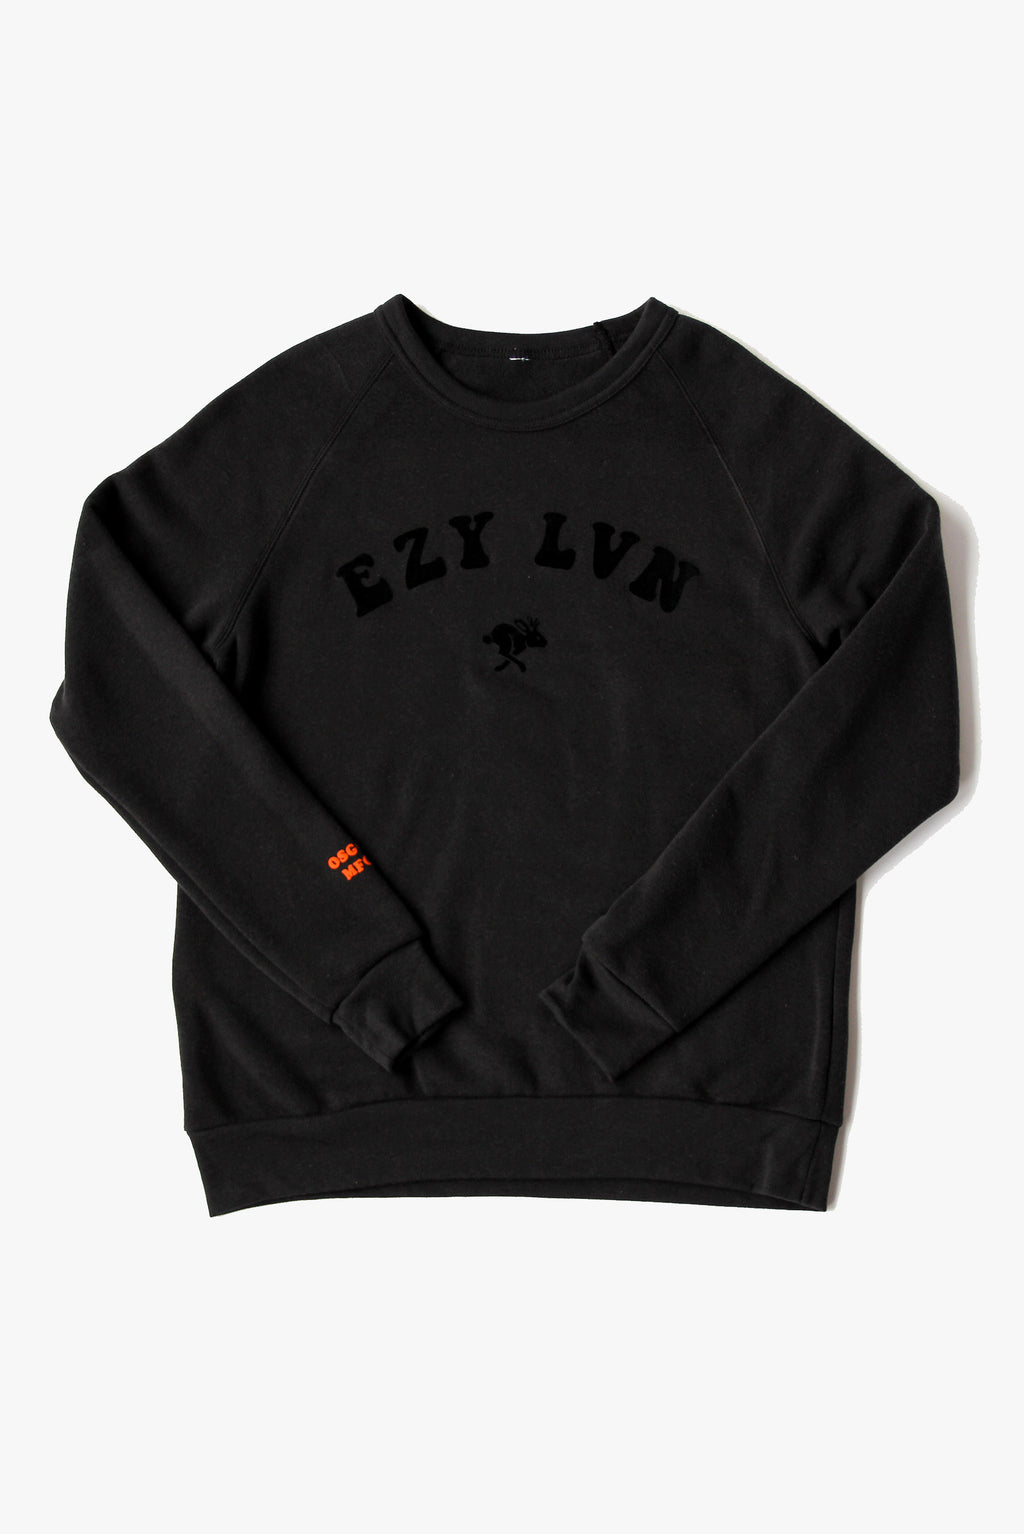 FAR OUT CREWNECK BLACK